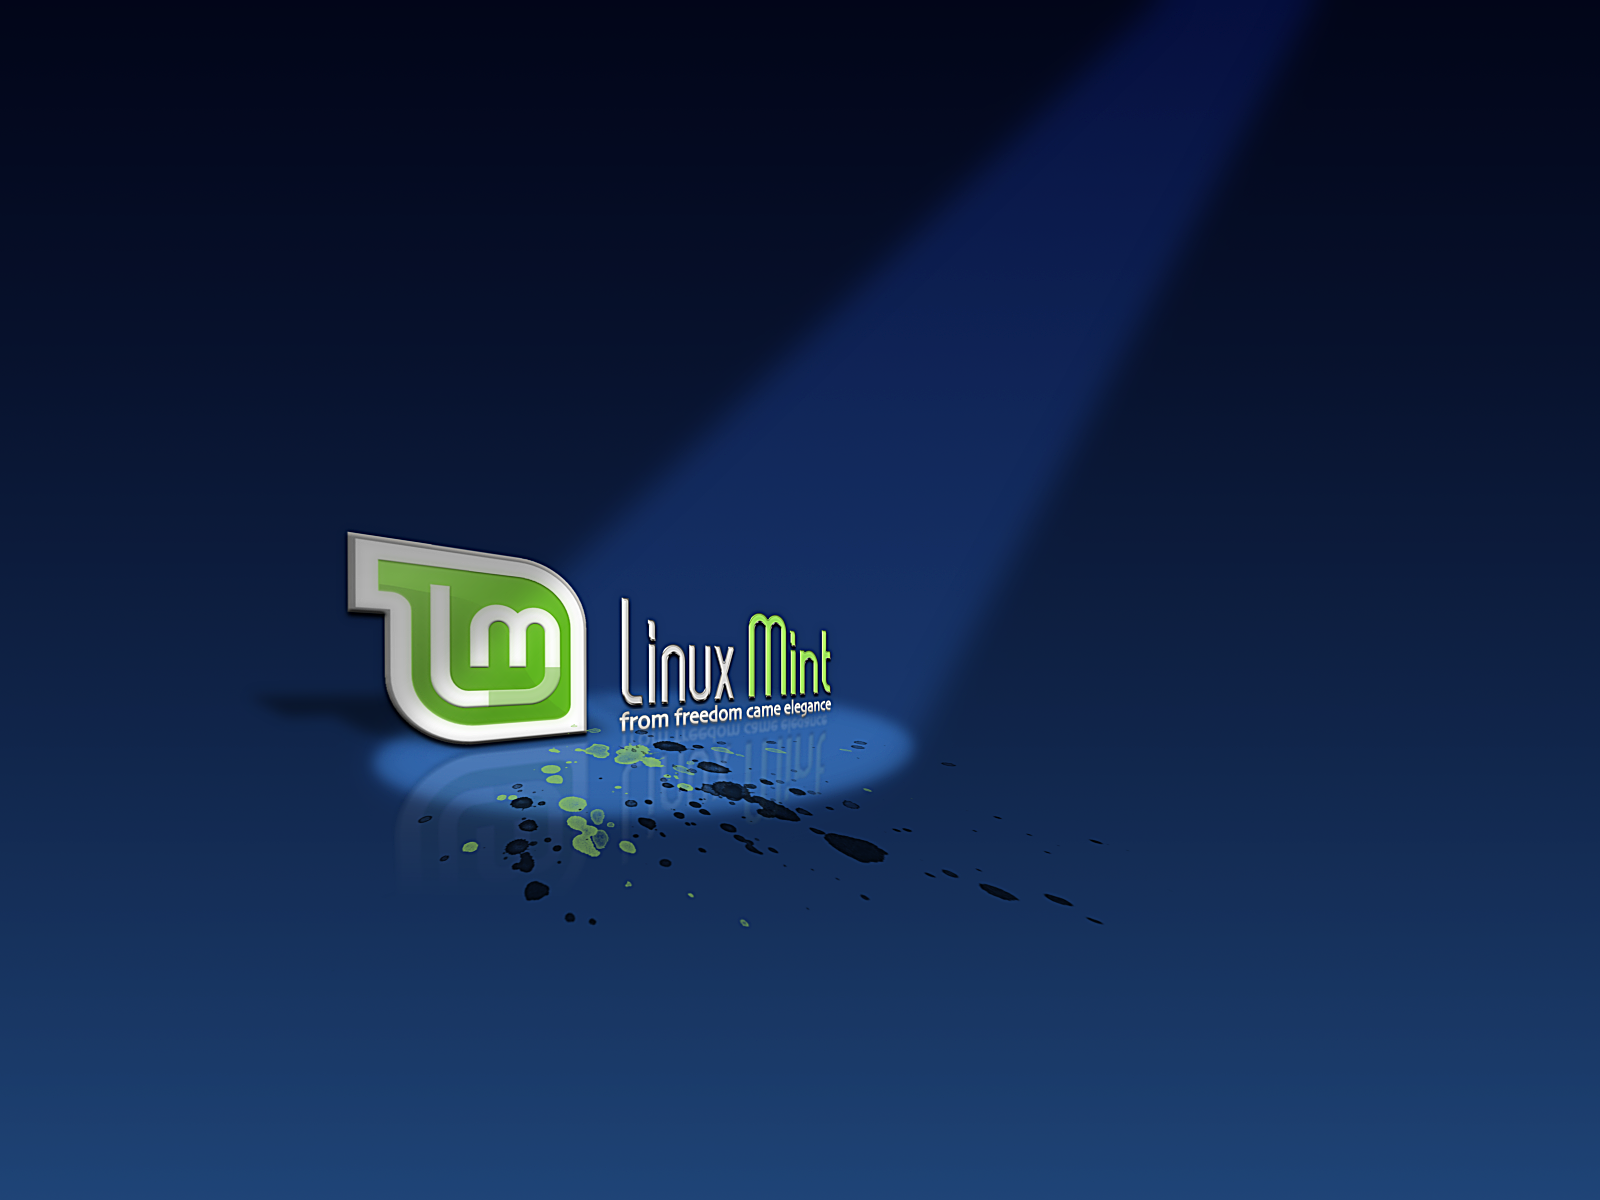 Linux mint clipart image library library Linux mint blue clipart - ClipartFox image library library